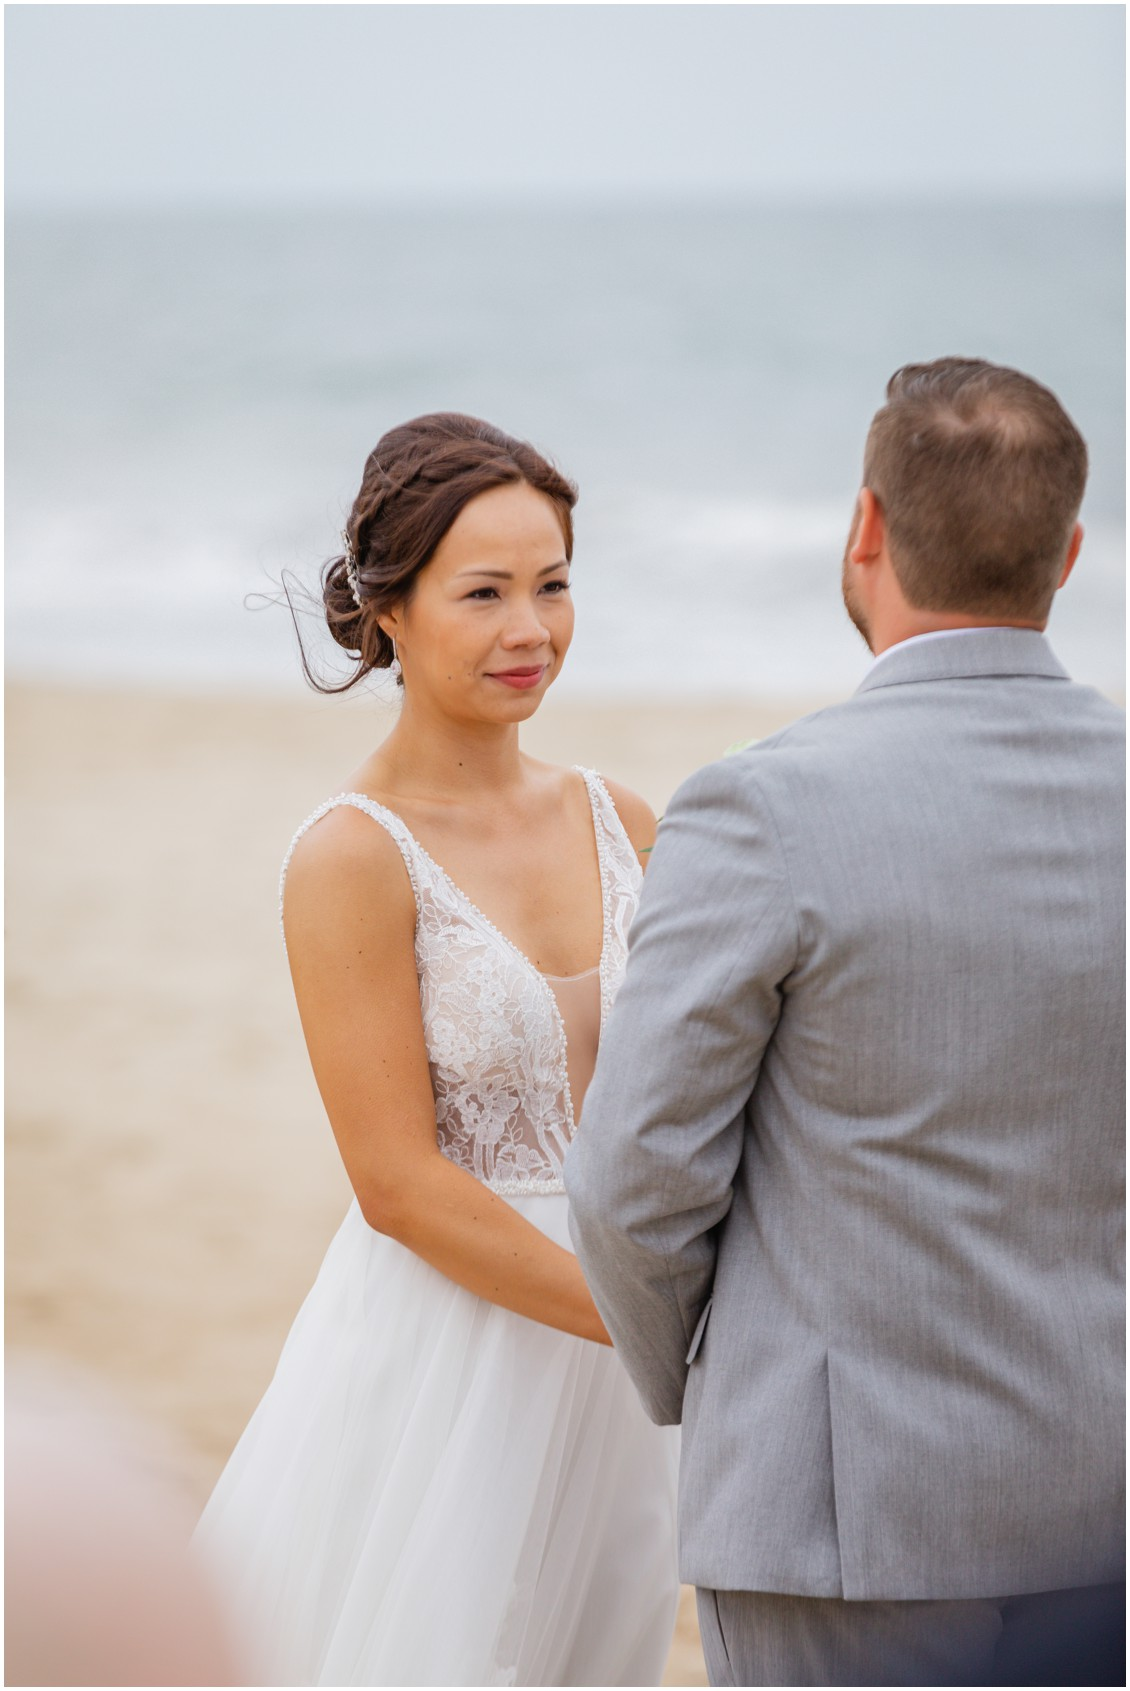 Bride at beach ceremony | My Eastern Shore Wedding | Dover Tents and Events